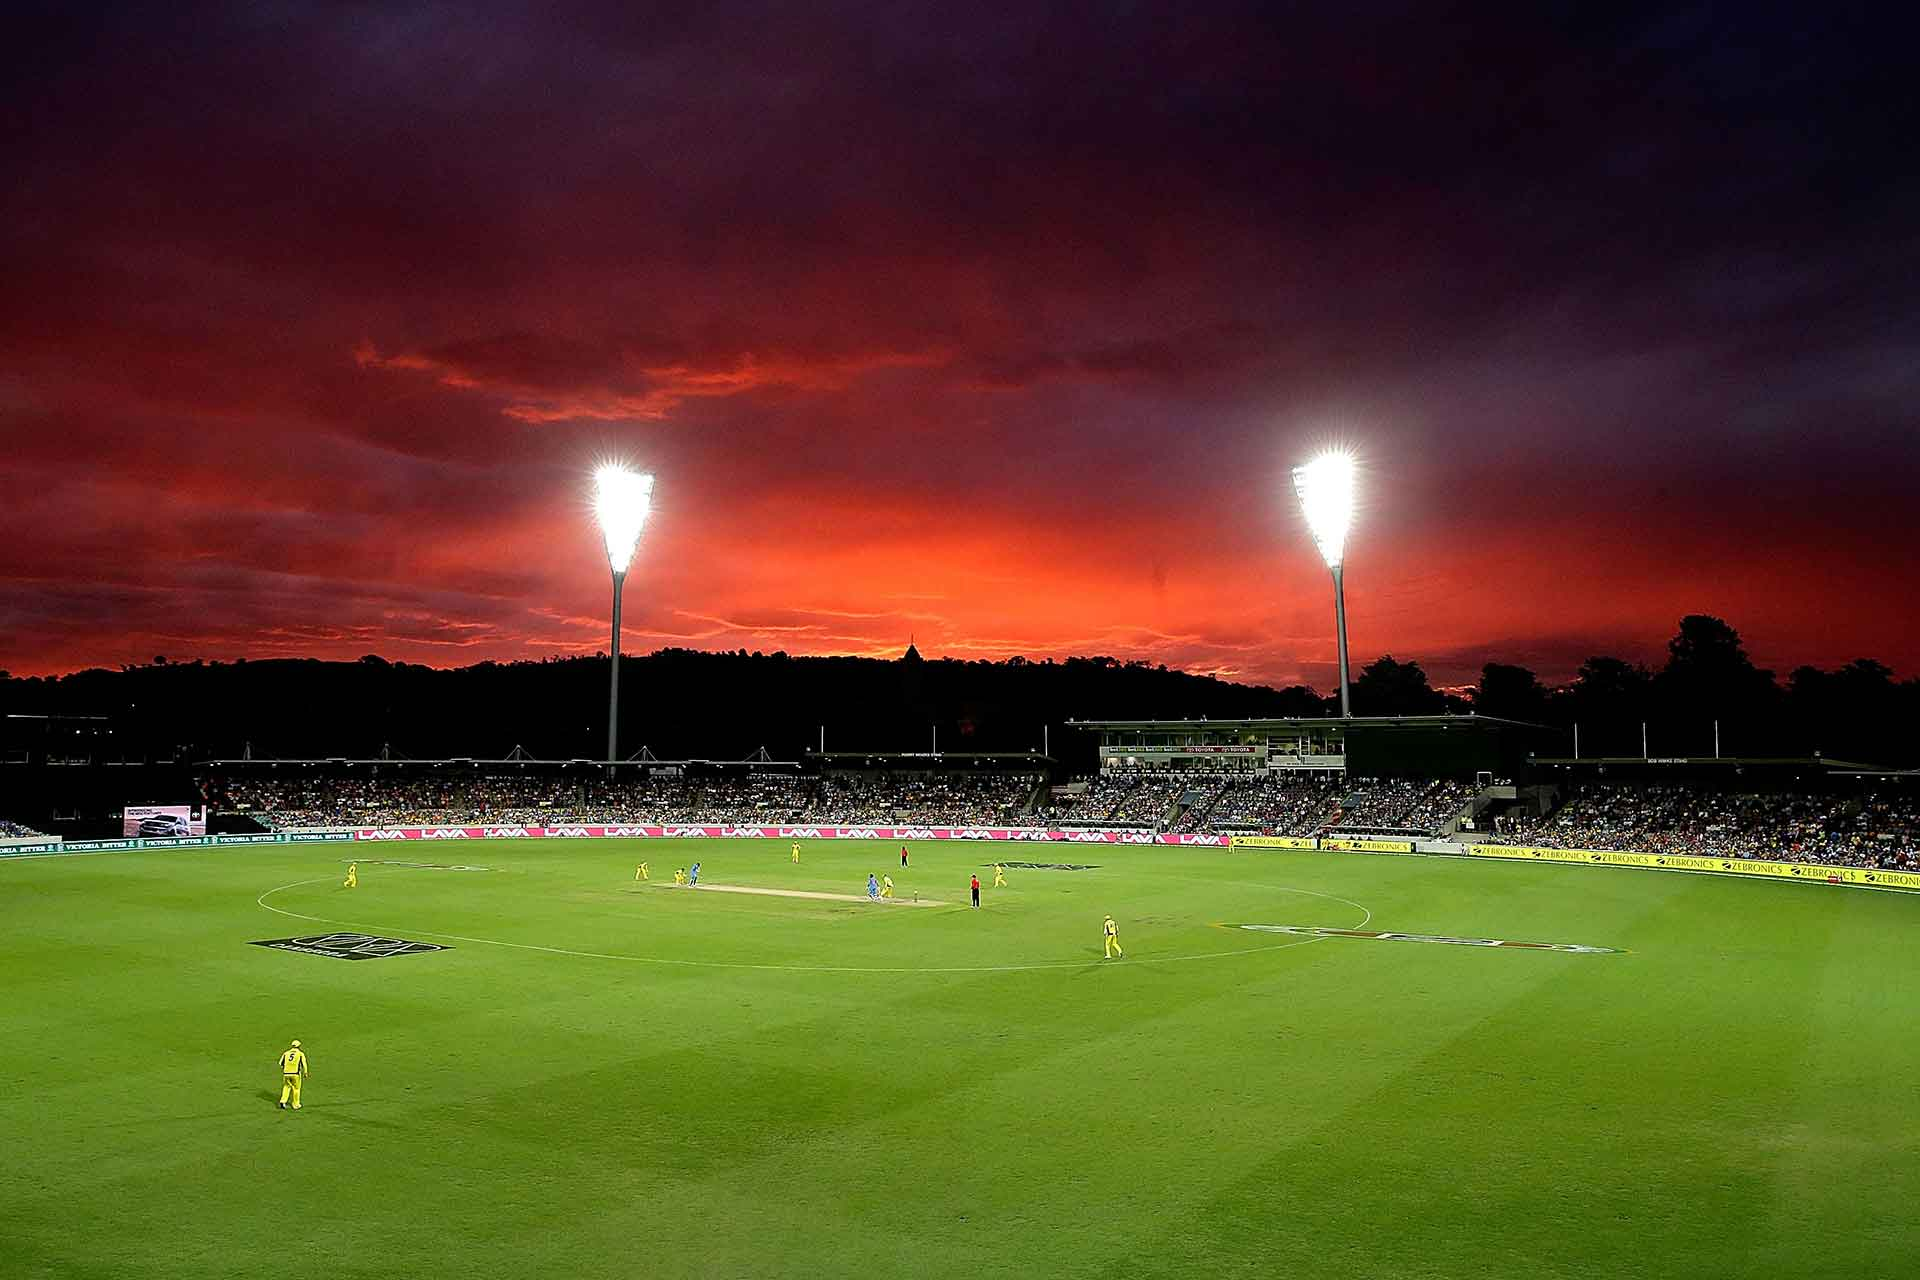 100 days to go until Victoria Bitter ODI show down at Manuka Oval